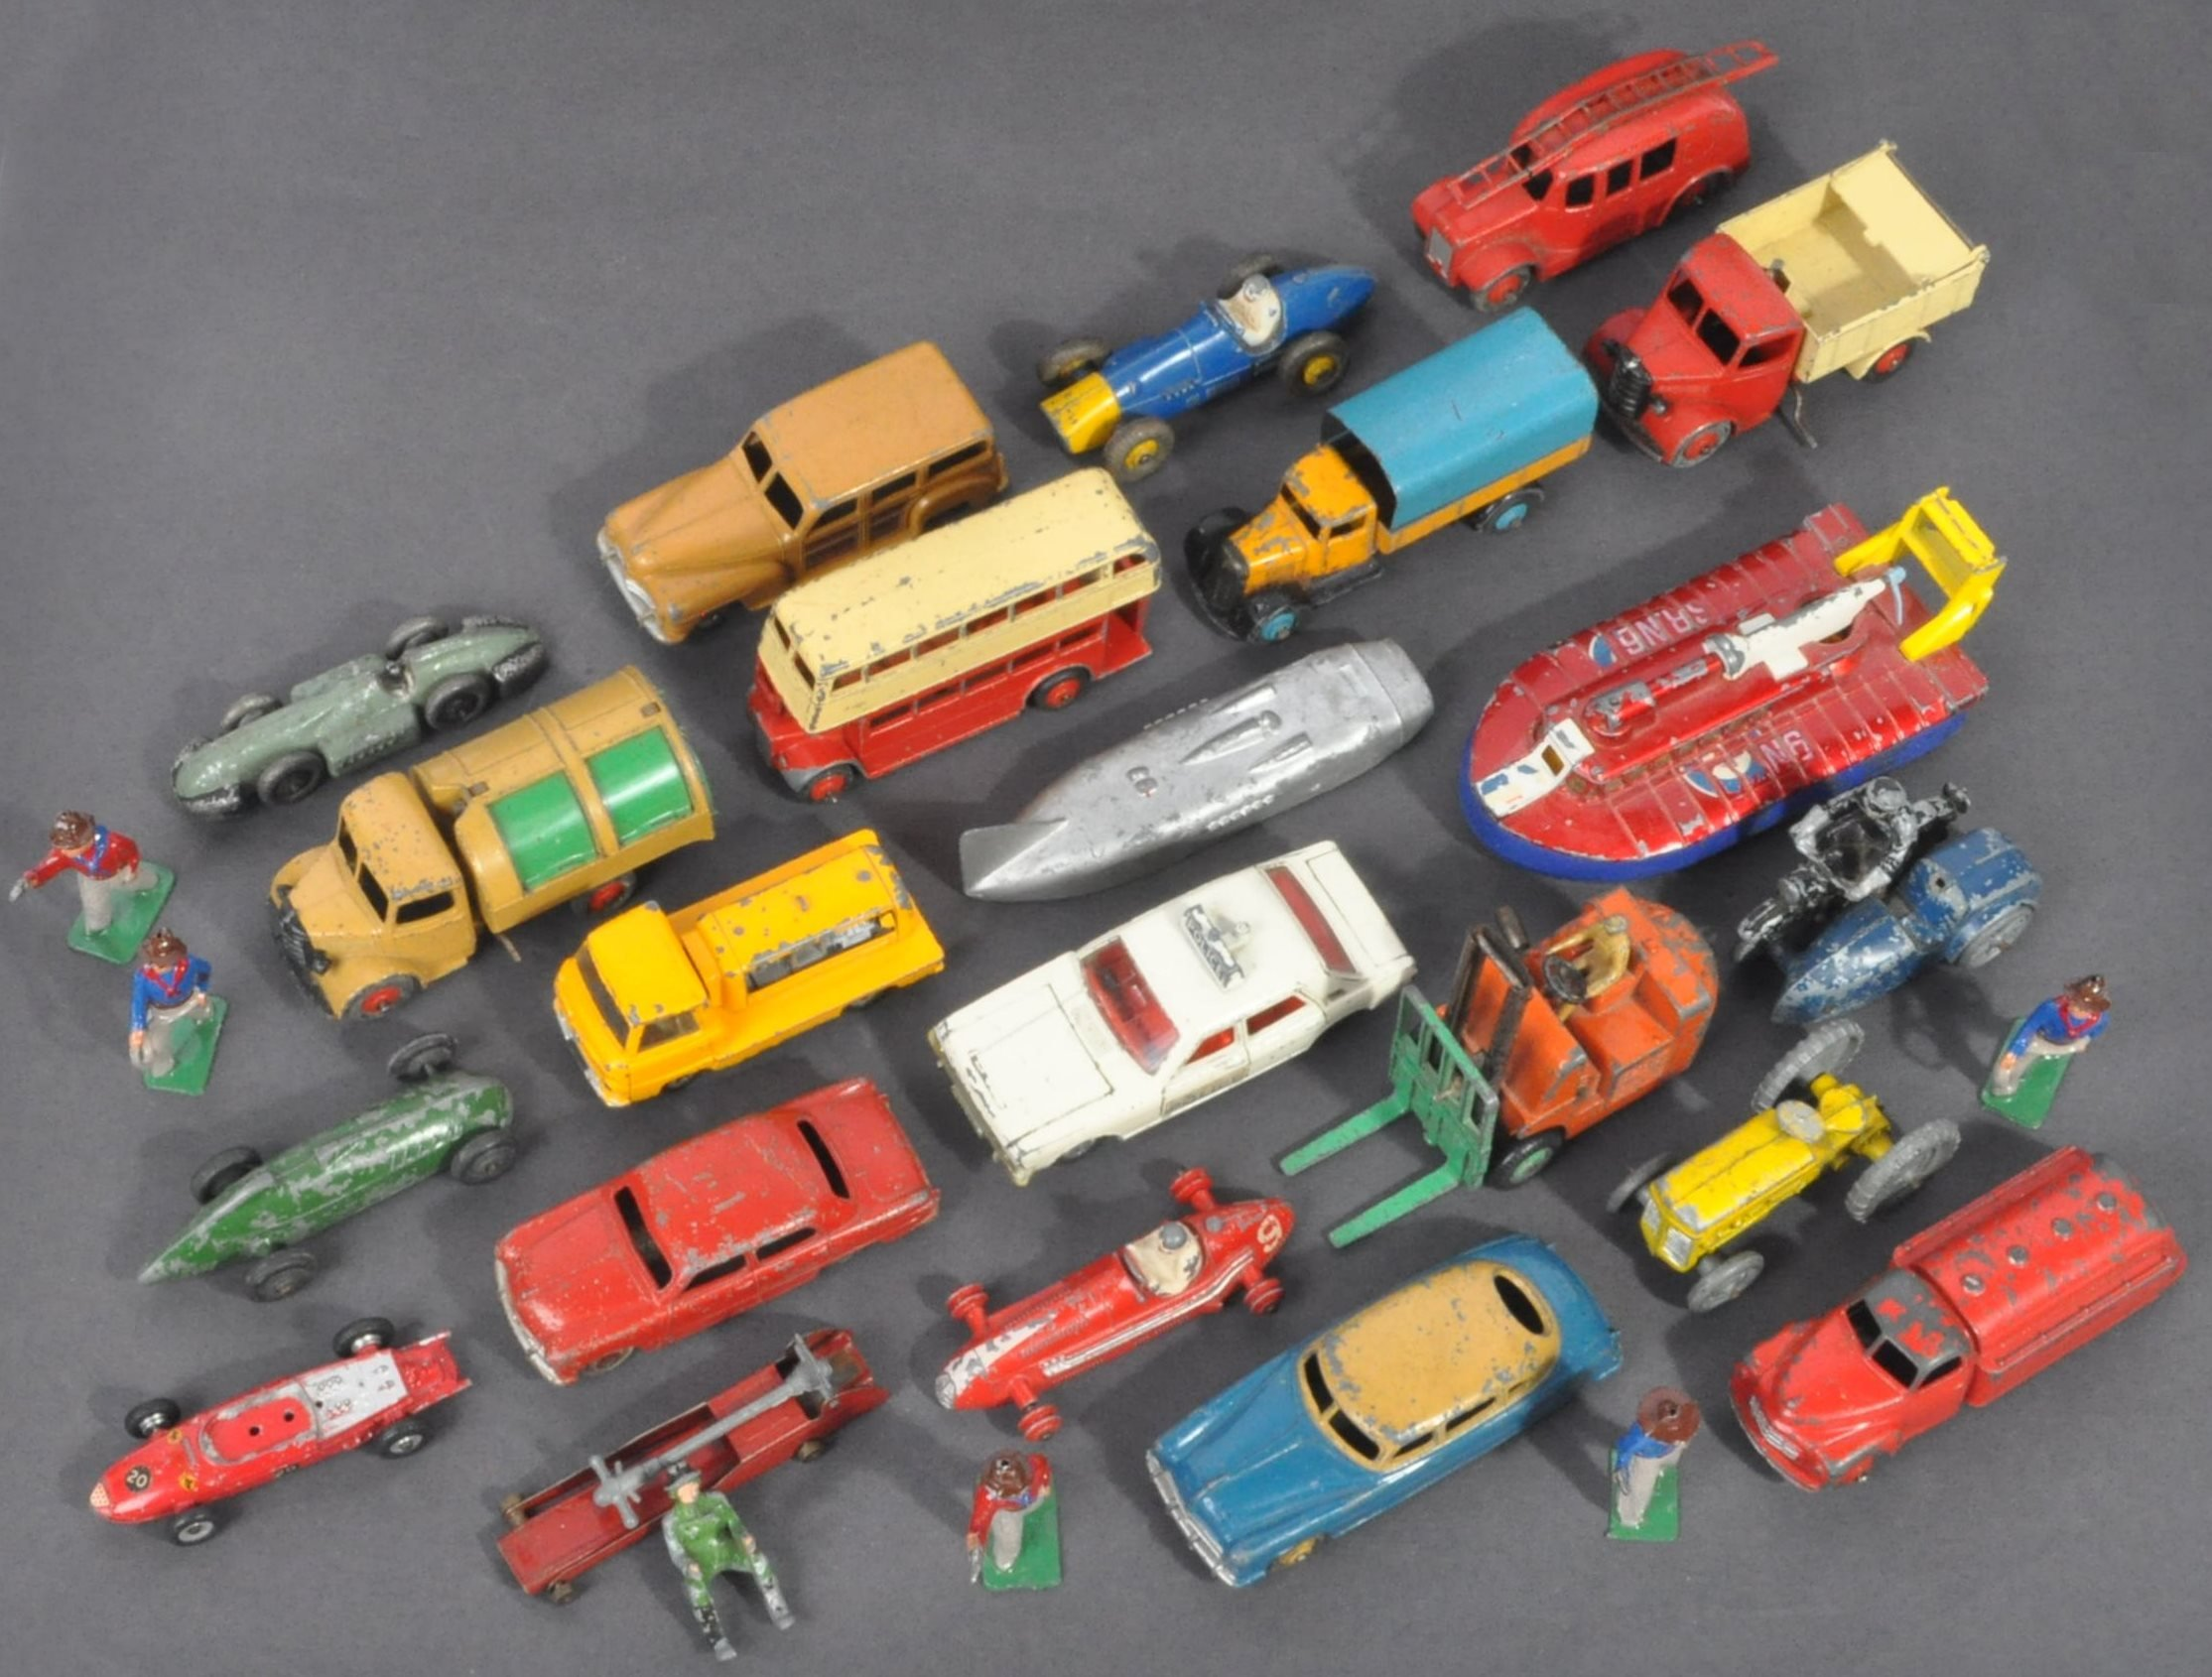 LARGE COLLECTION OF DINKY & OTHER DIECAST MODELS